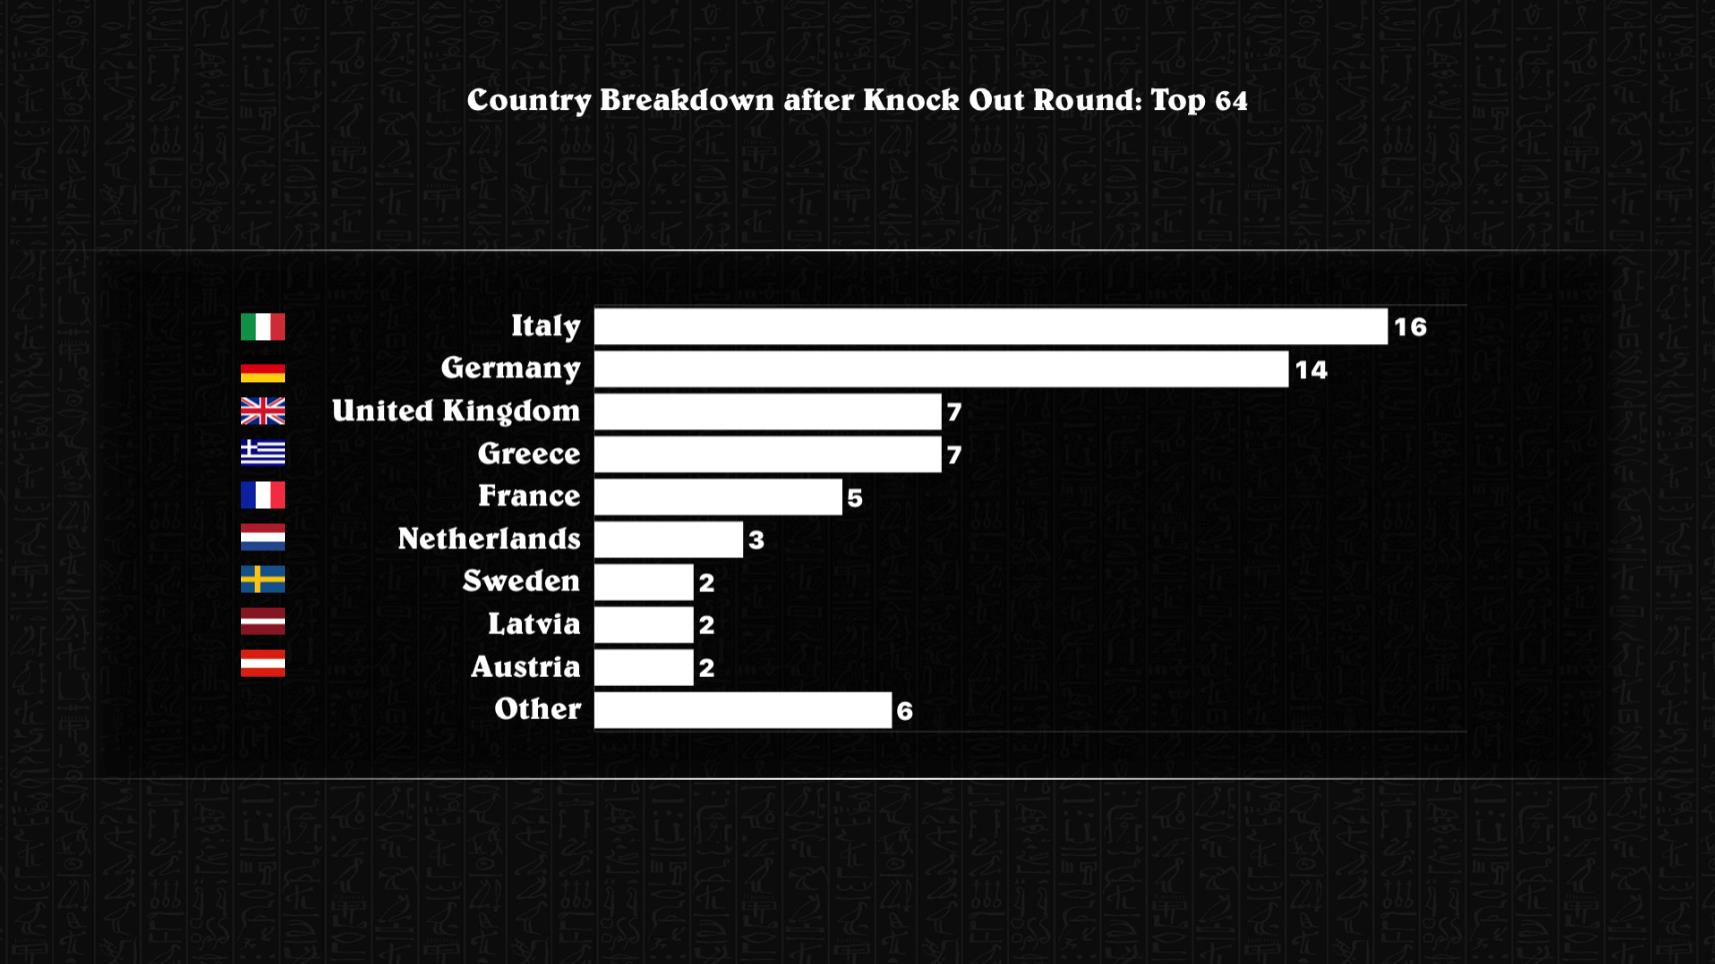 Top 64 Country Breakdown